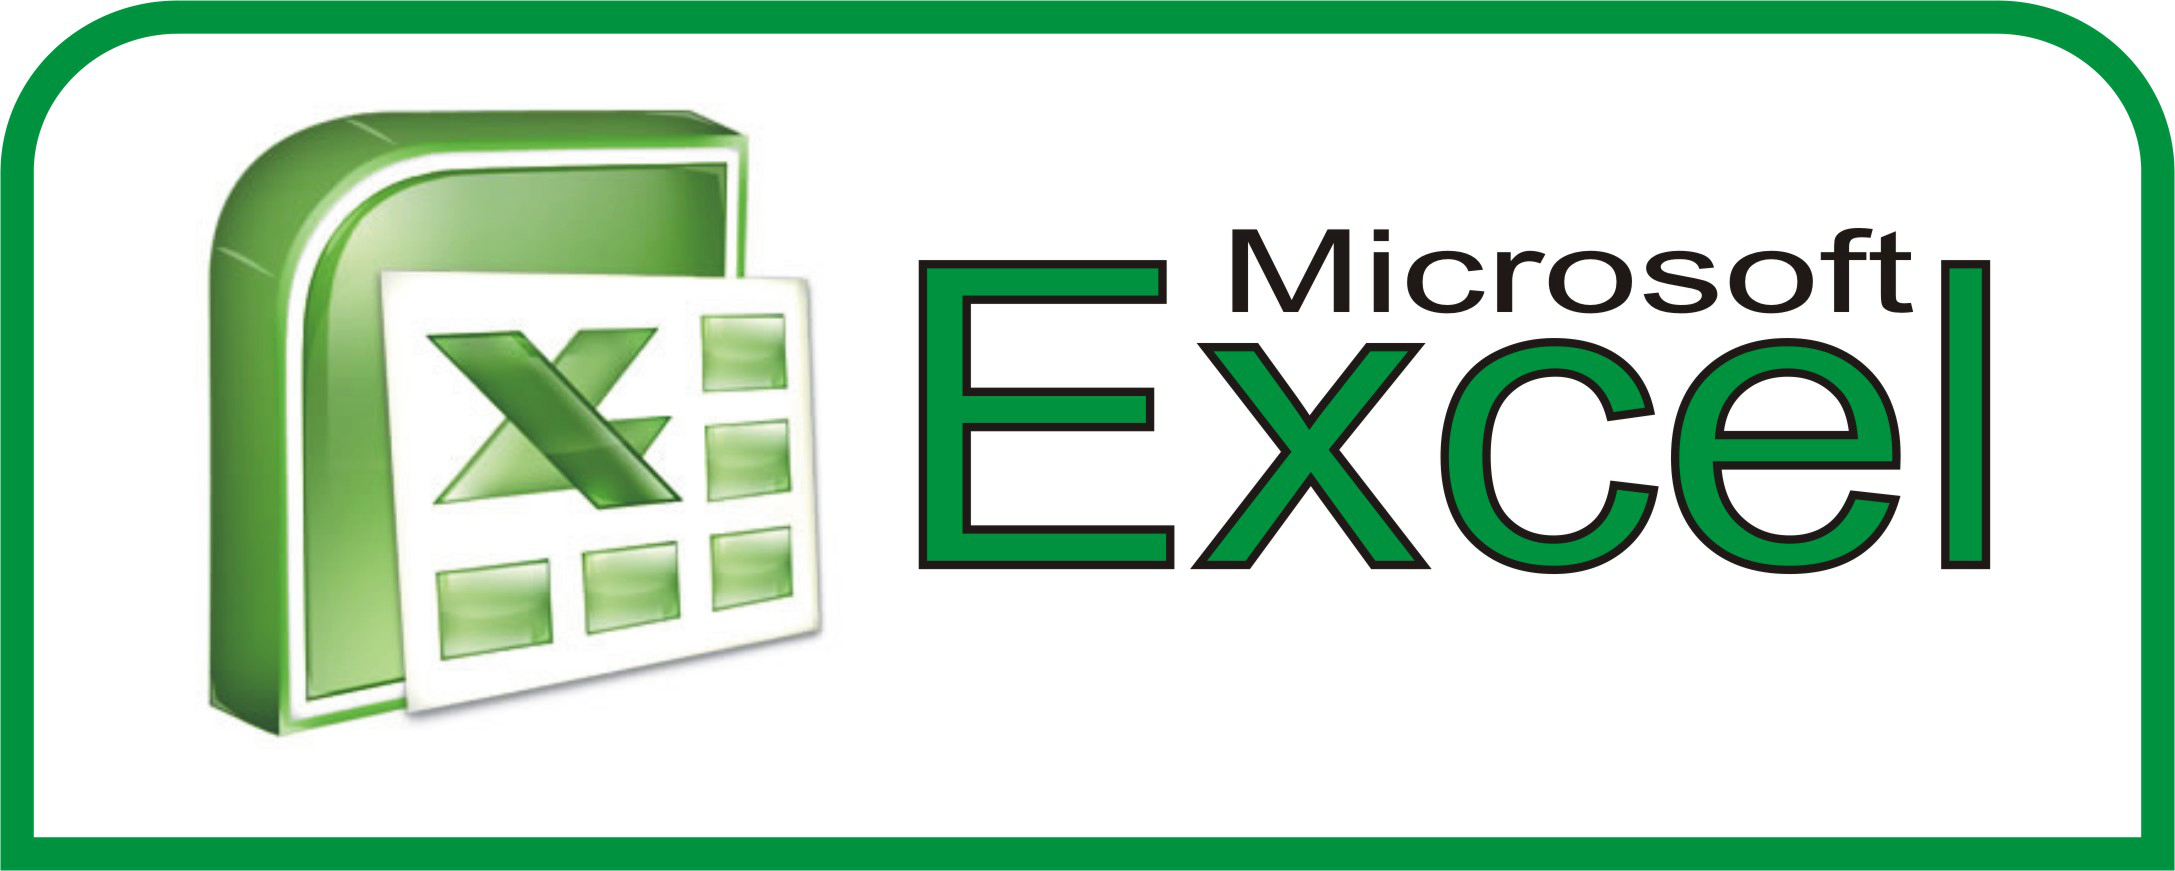 Ediblewildsus  Ravishing  Excel Shortcuts You Probably Didnt Know About  Techdissected With Glamorous Insert New Line In Excel Besides Excel Recipe Template Furthermore Survey Template Excel With Divine Monthly Expenses Excel Sheet Format Also Modulo Excel In Addition Remove Blank Excel Rows And Excel  Compare Two Columns As Well As How To Find Mean Median And Mode In Excel Additionally Working With Arrays In Excel Vba From Techdissectedcom With Ediblewildsus  Glamorous  Excel Shortcuts You Probably Didnt Know About  Techdissected With Divine Insert New Line In Excel Besides Excel Recipe Template Furthermore Survey Template Excel And Ravishing Monthly Expenses Excel Sheet Format Also Modulo Excel In Addition Remove Blank Excel Rows From Techdissectedcom